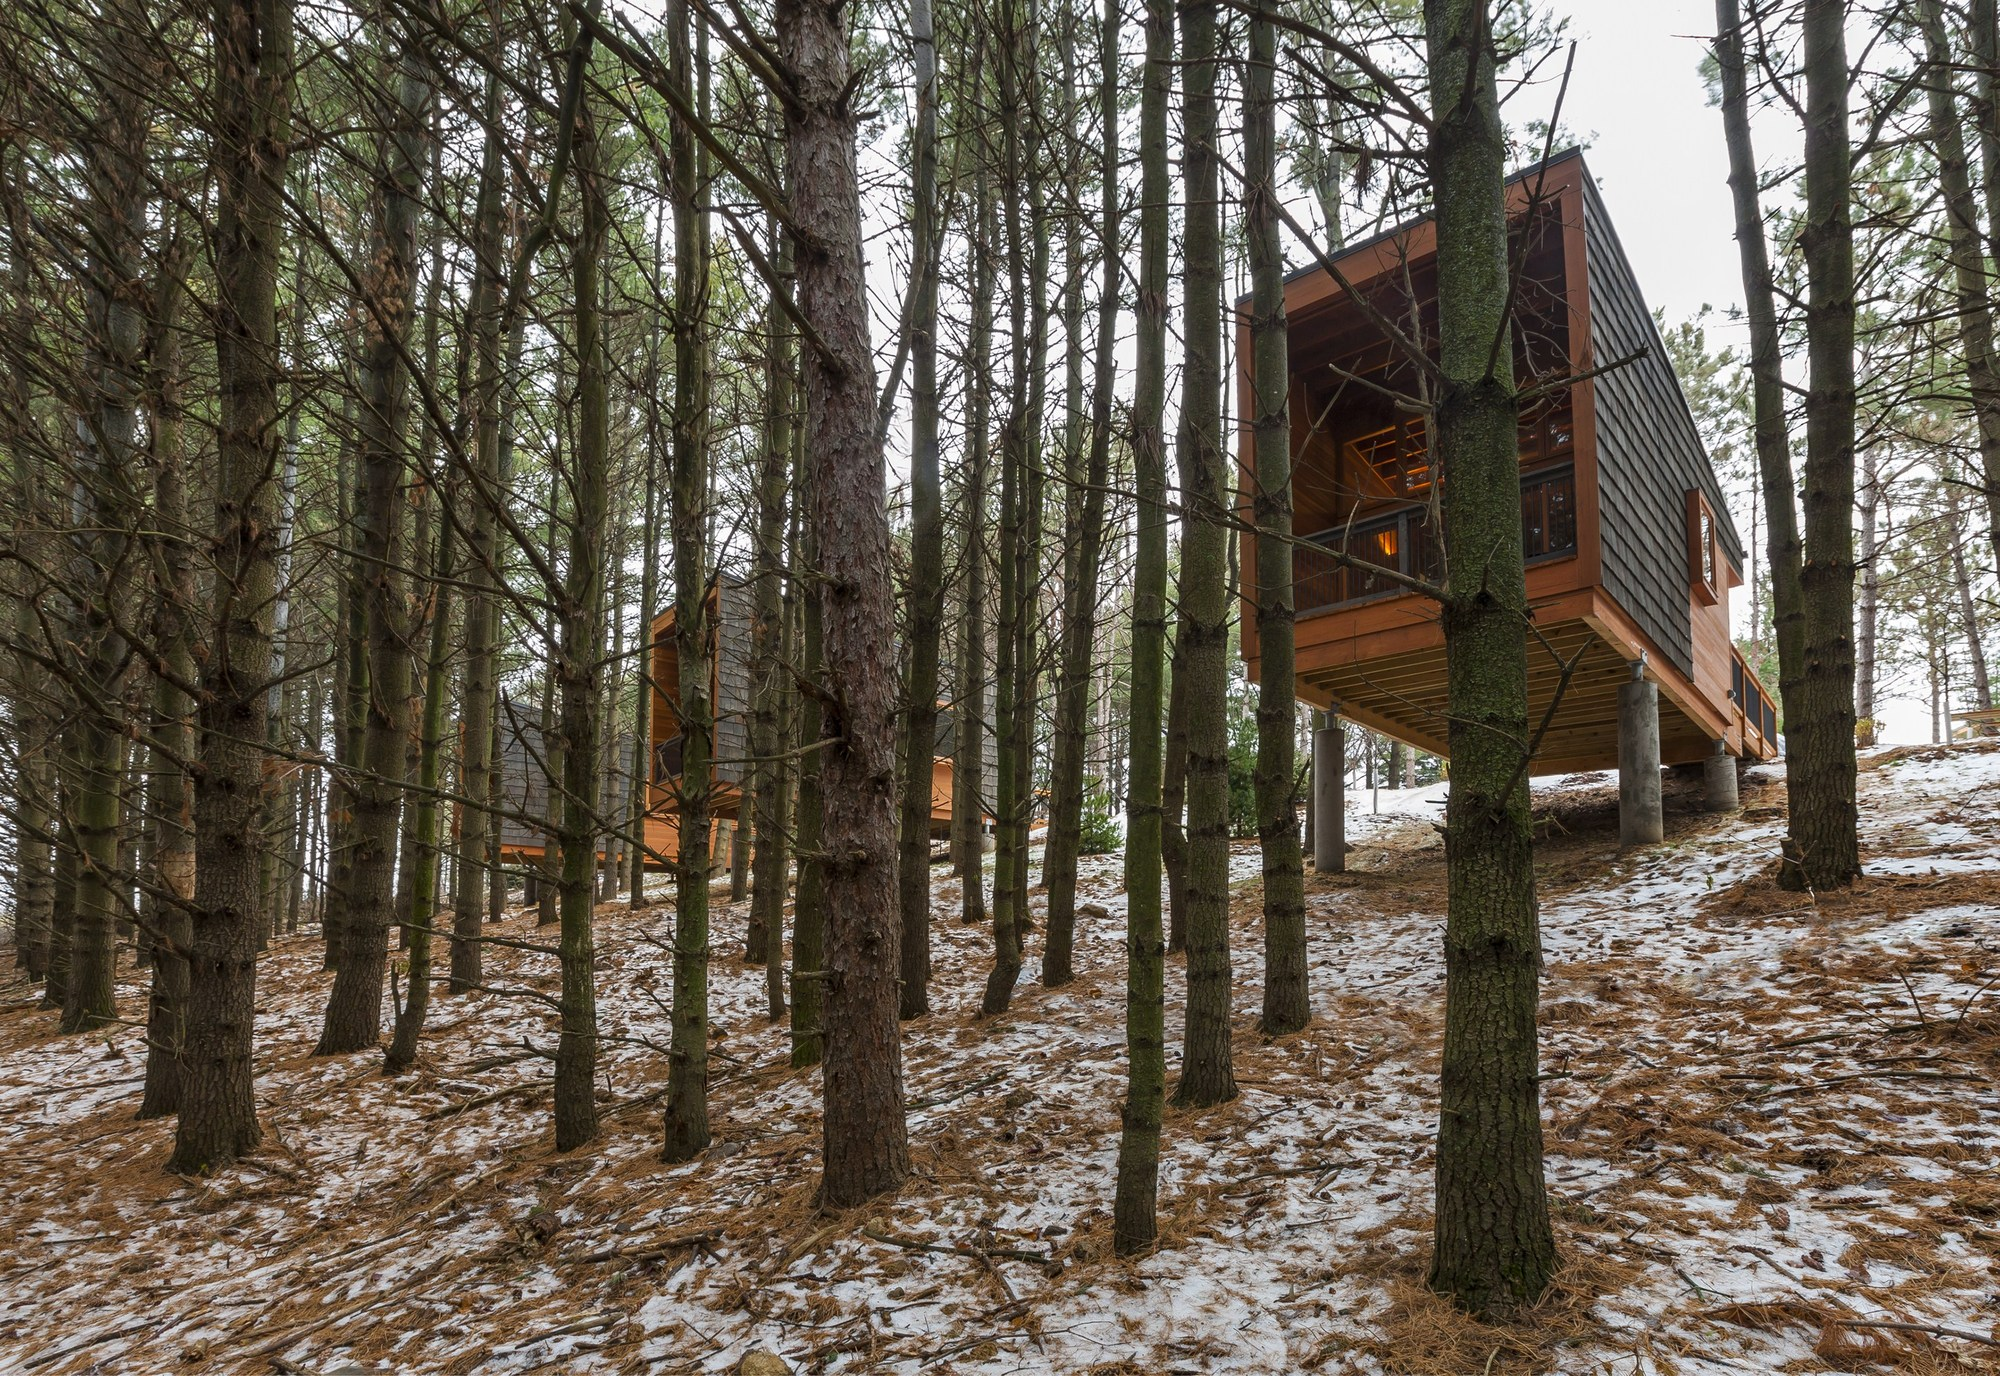 Whitetail Woods Regional Park Camper Cabins / HGA Architects and Engineers